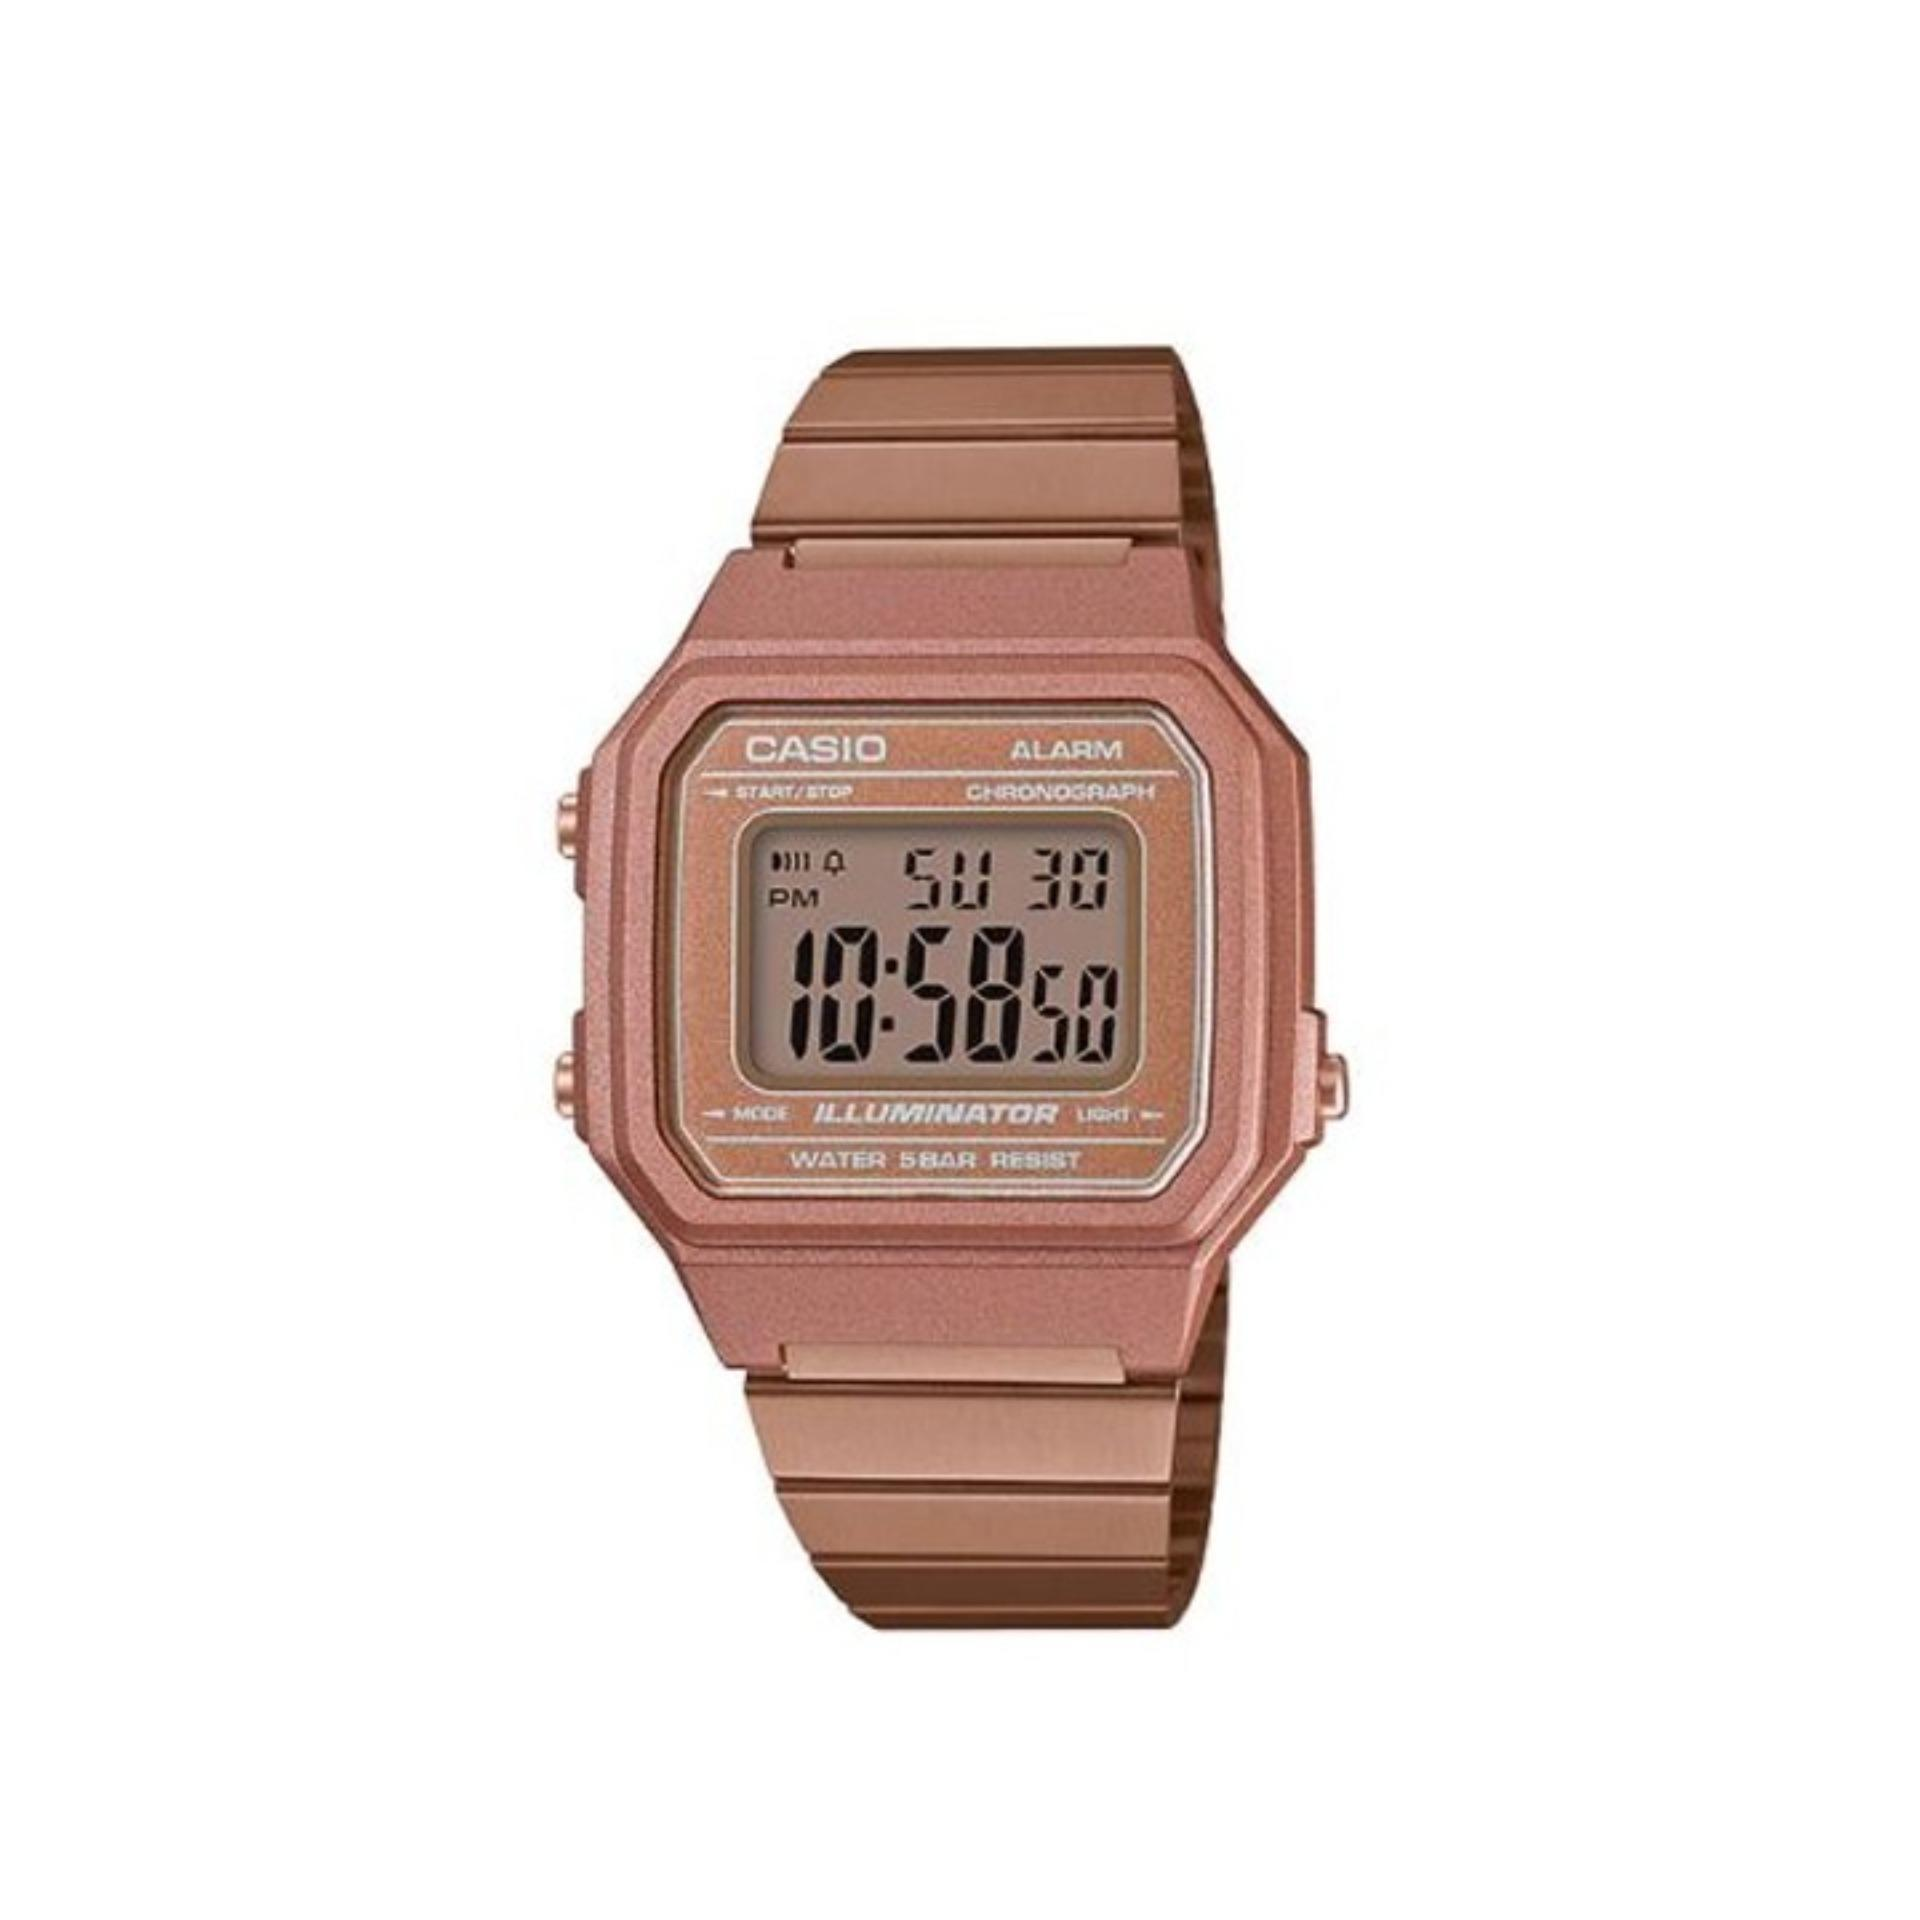 Casio Digital Unisex Rose Gold Stainless Steel Strap Watch B650wc 5adf With 1 Year Warranty T1y